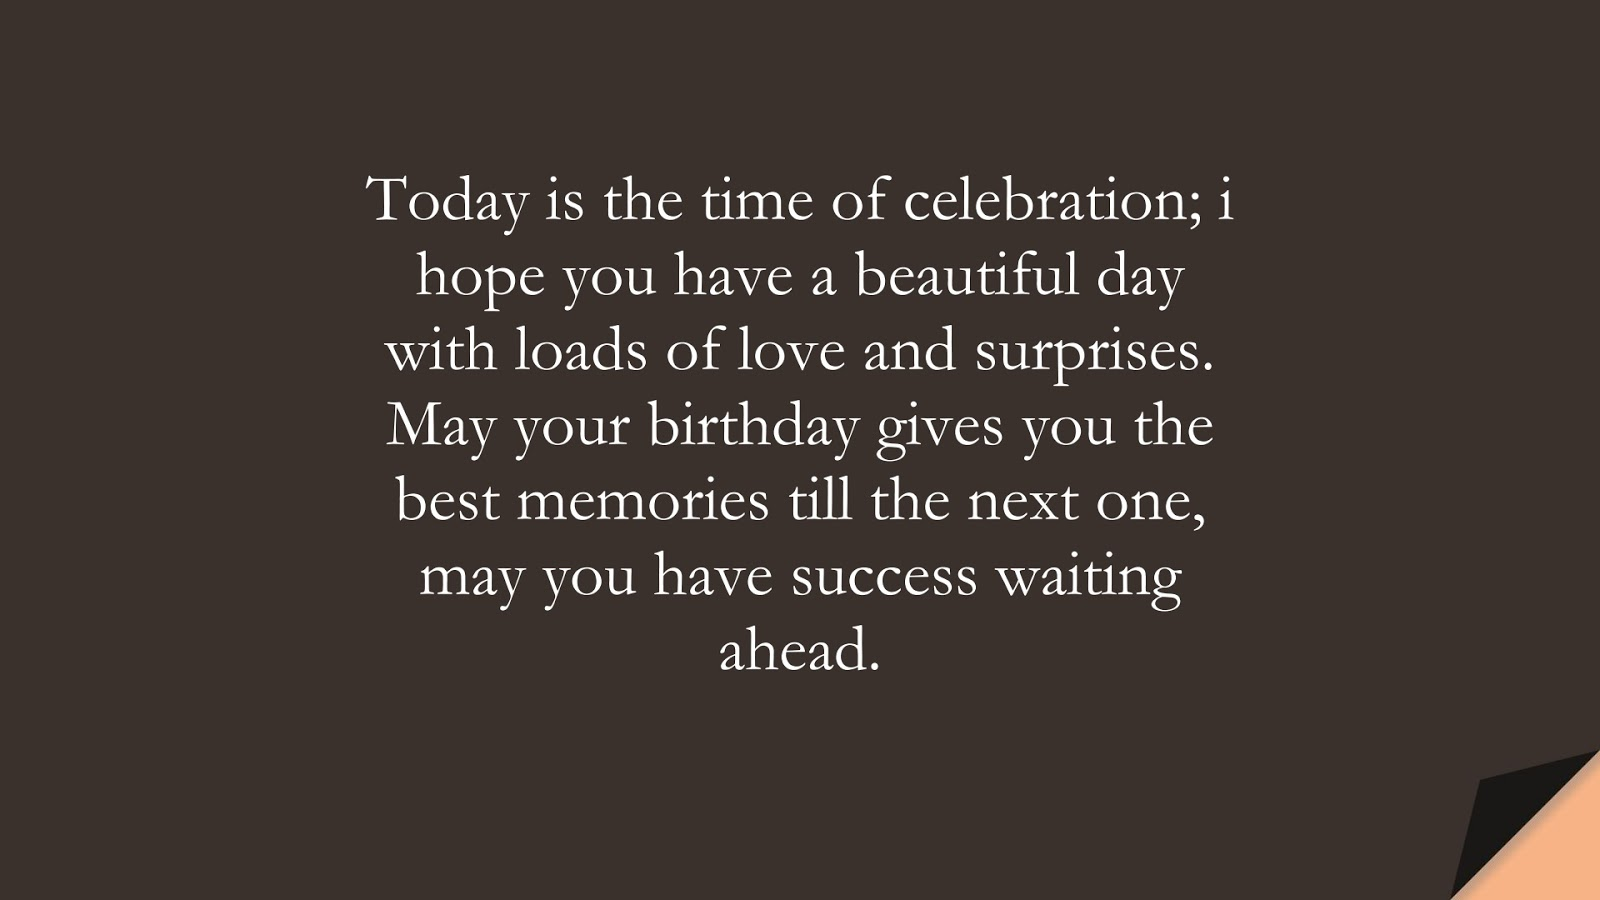 Today is the time of celebration; i hope you have a beautiful day with loads of love and surprises. May your birthday gives you the best memories till the next one, may you have success waiting ahead.FALSE